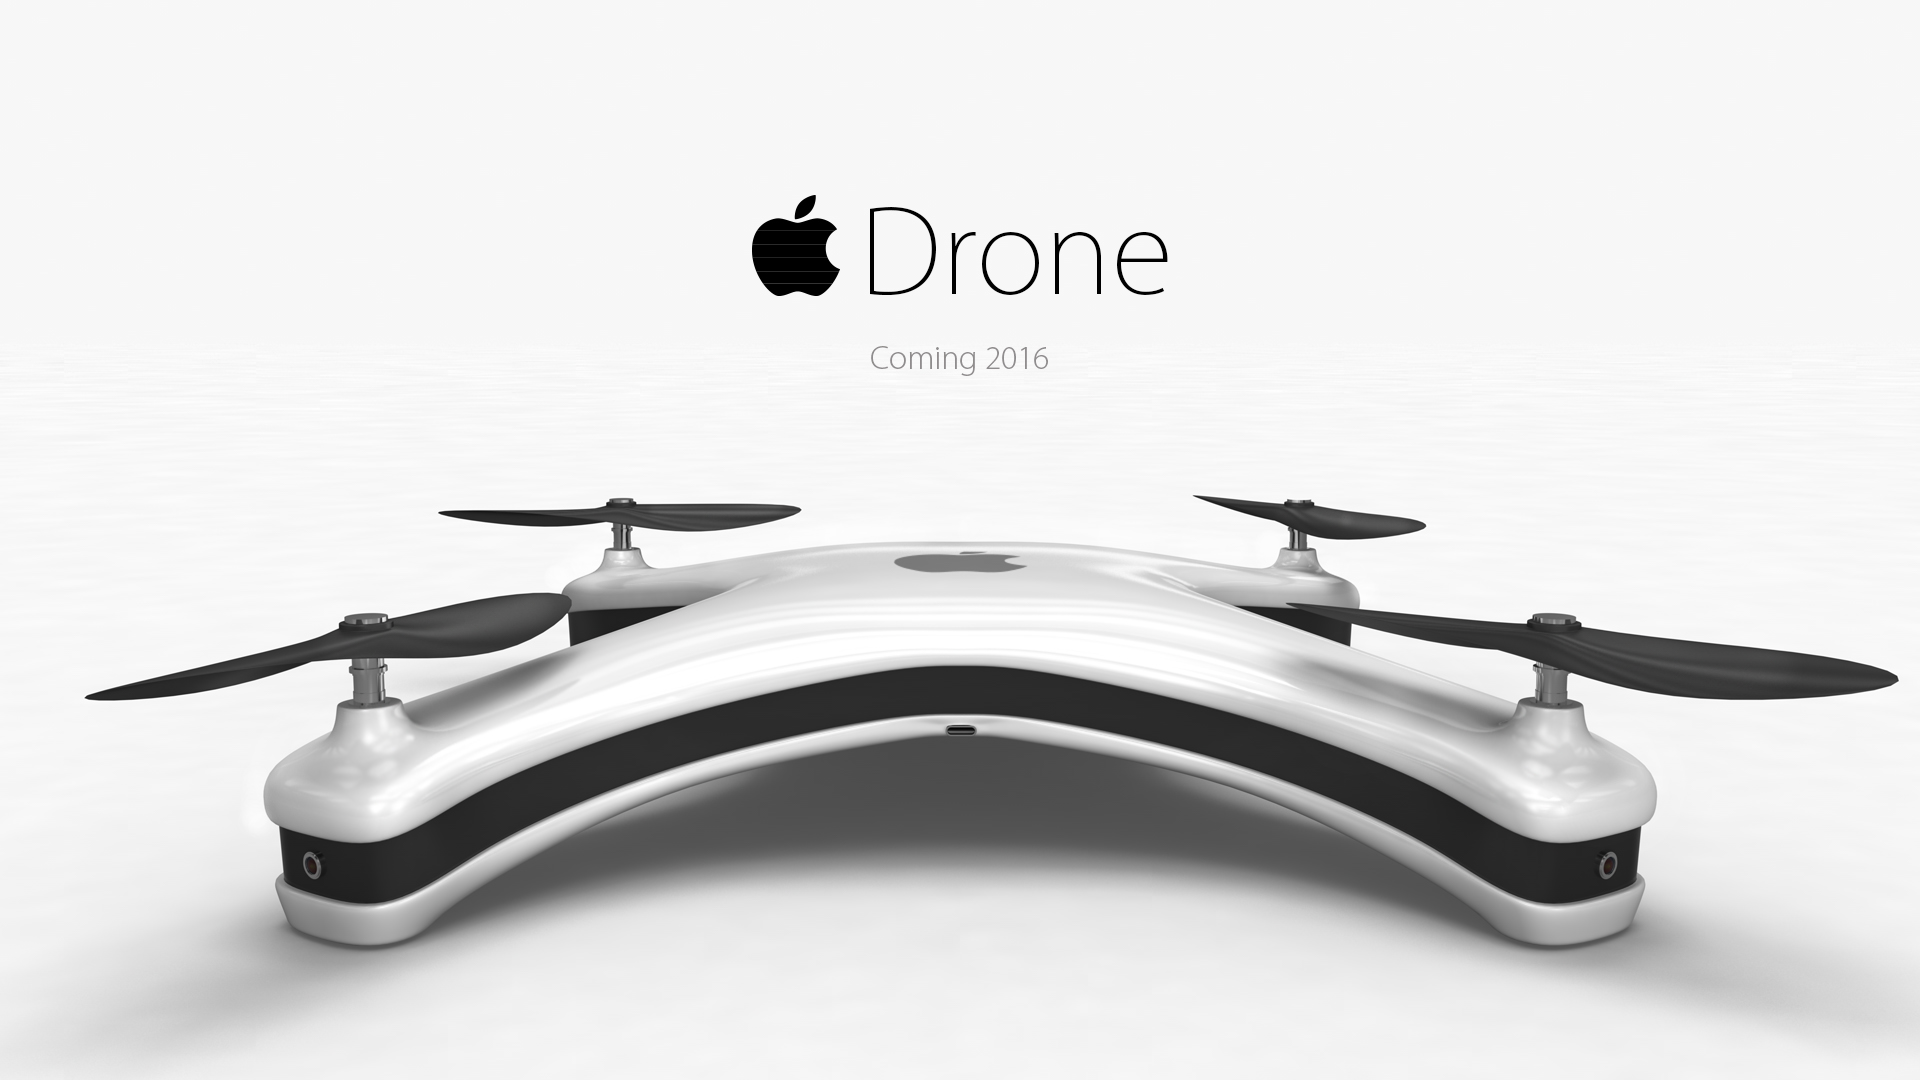 Who Invented The Drone >> Best Drones 2015/2016 With Prices to buy for Christmas | The Artistic Soul